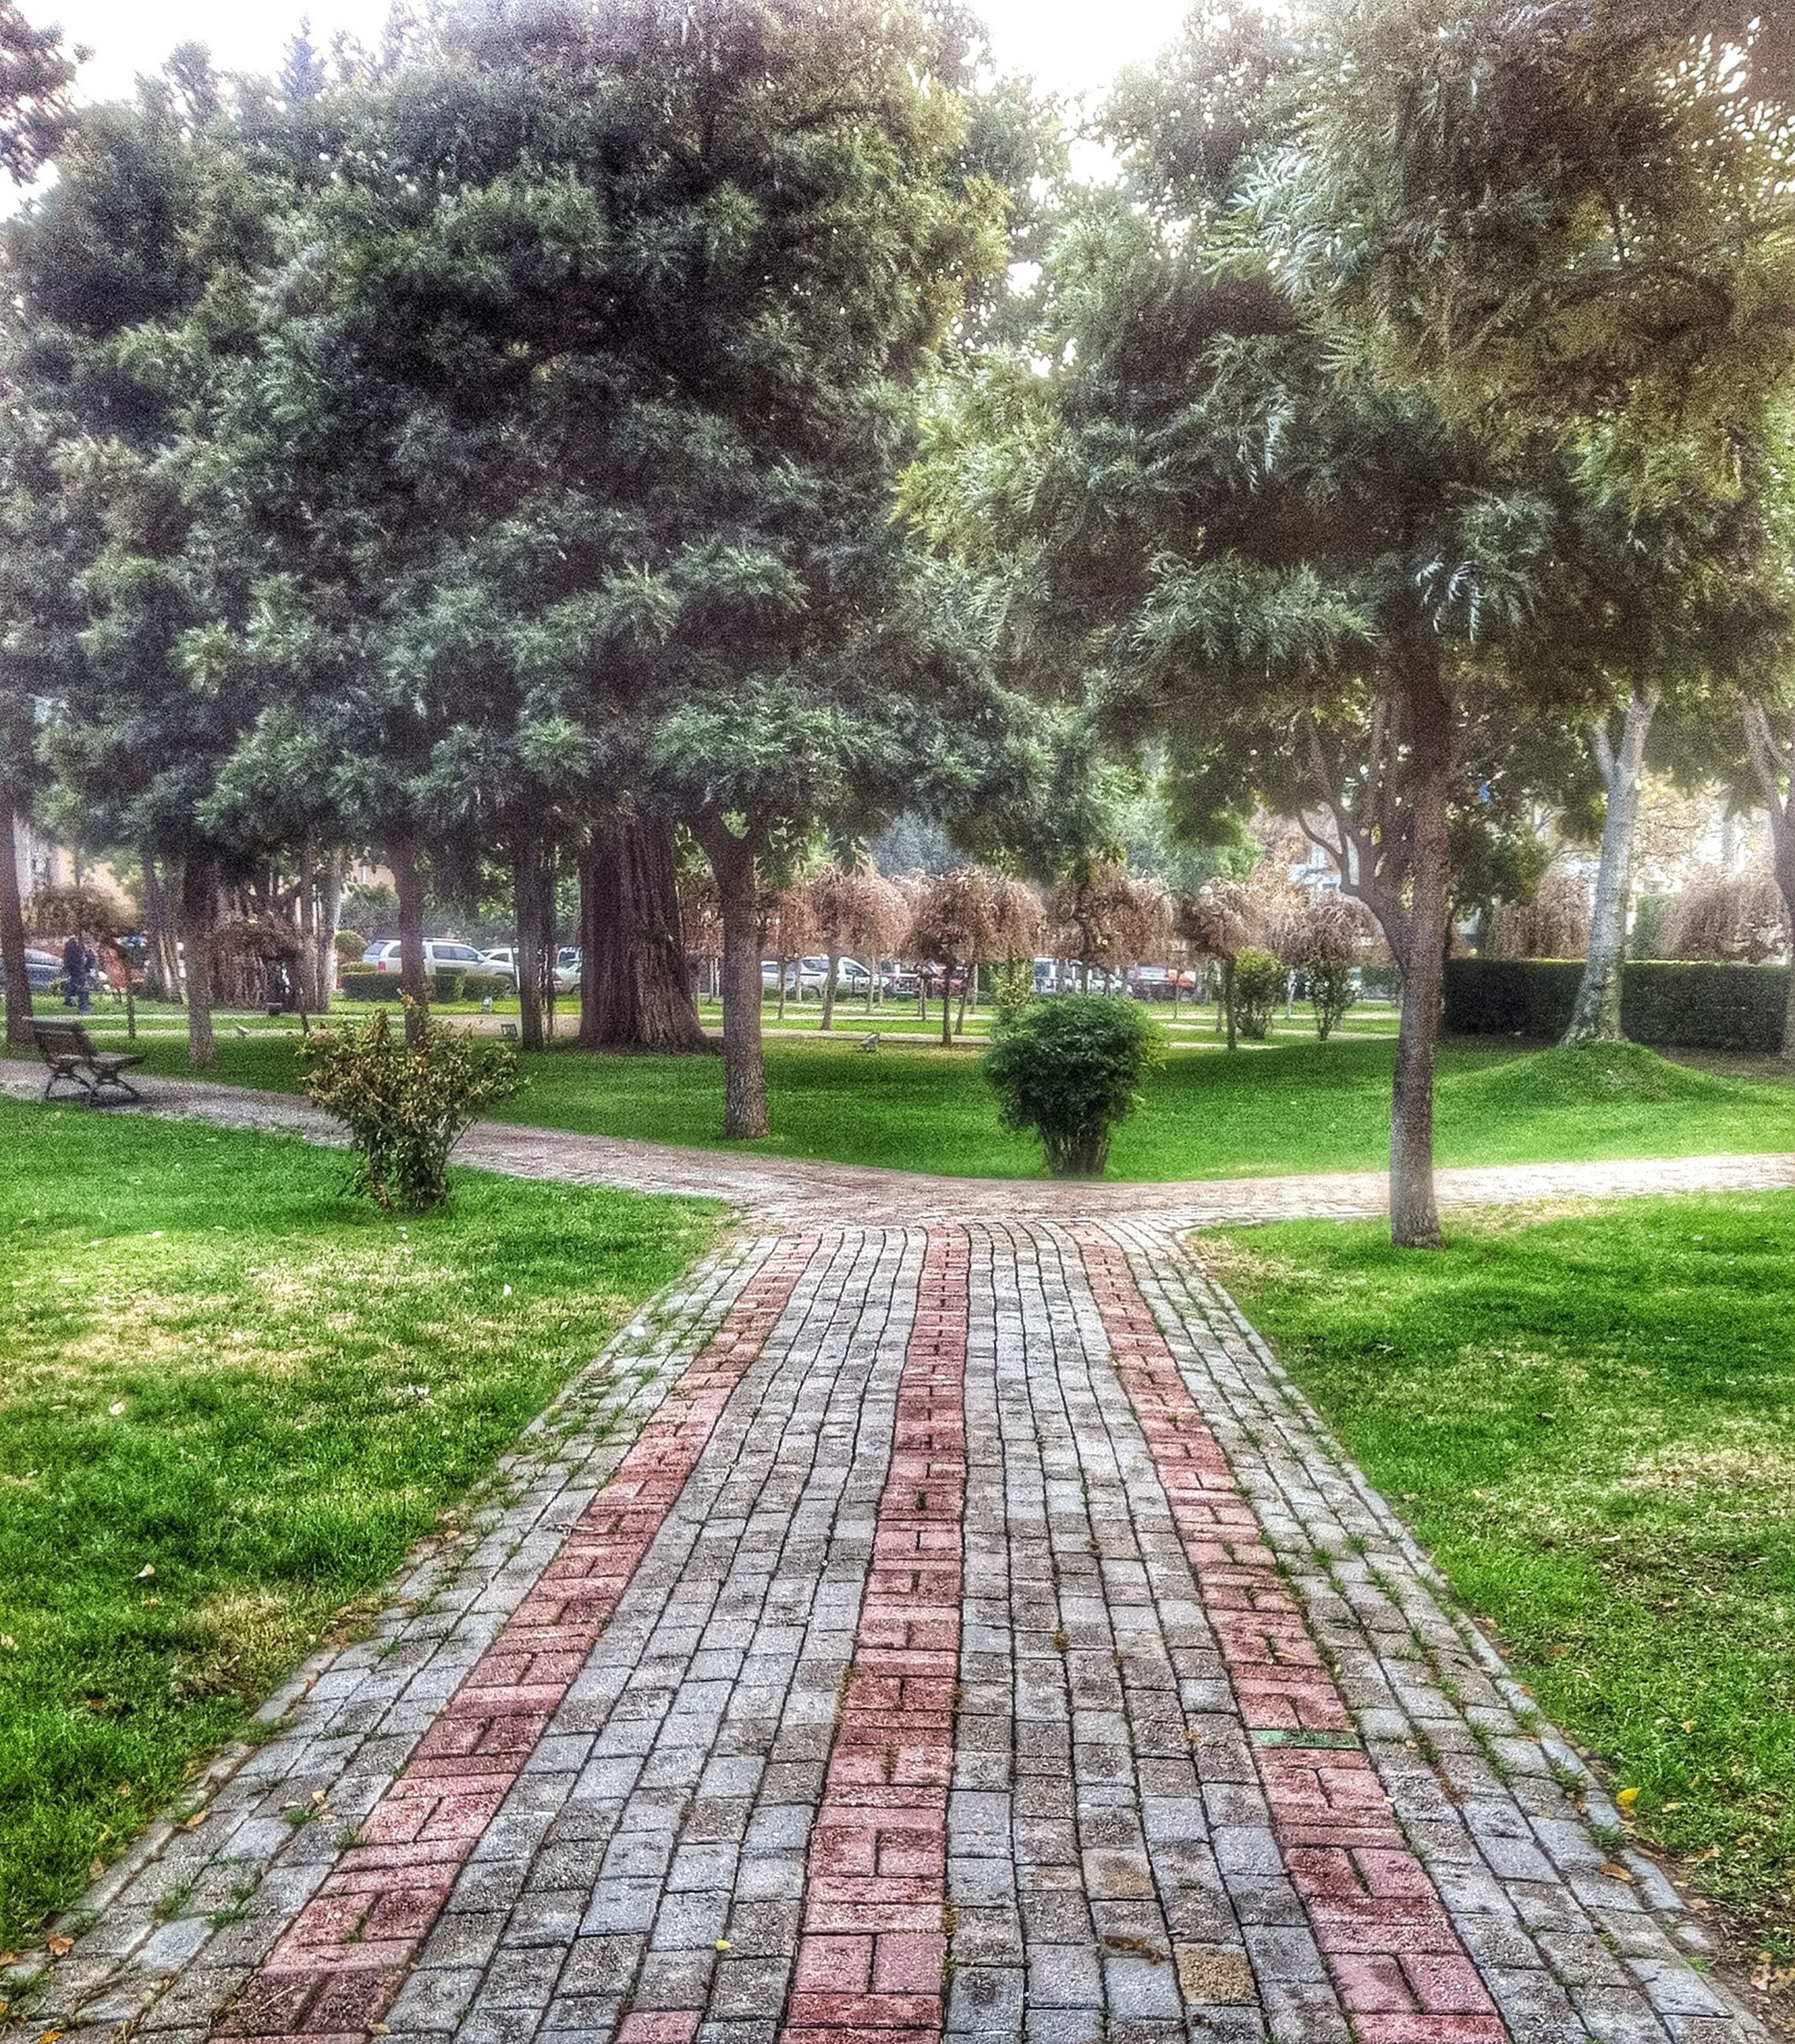 tree, grass, the way forward, footpath, diminishing perspective, green color, growth, park - man made space, tranquility, vanishing point, nature, walkway, field, tranquil scene, pathway, grassy, park, treelined, empty, tree trunk